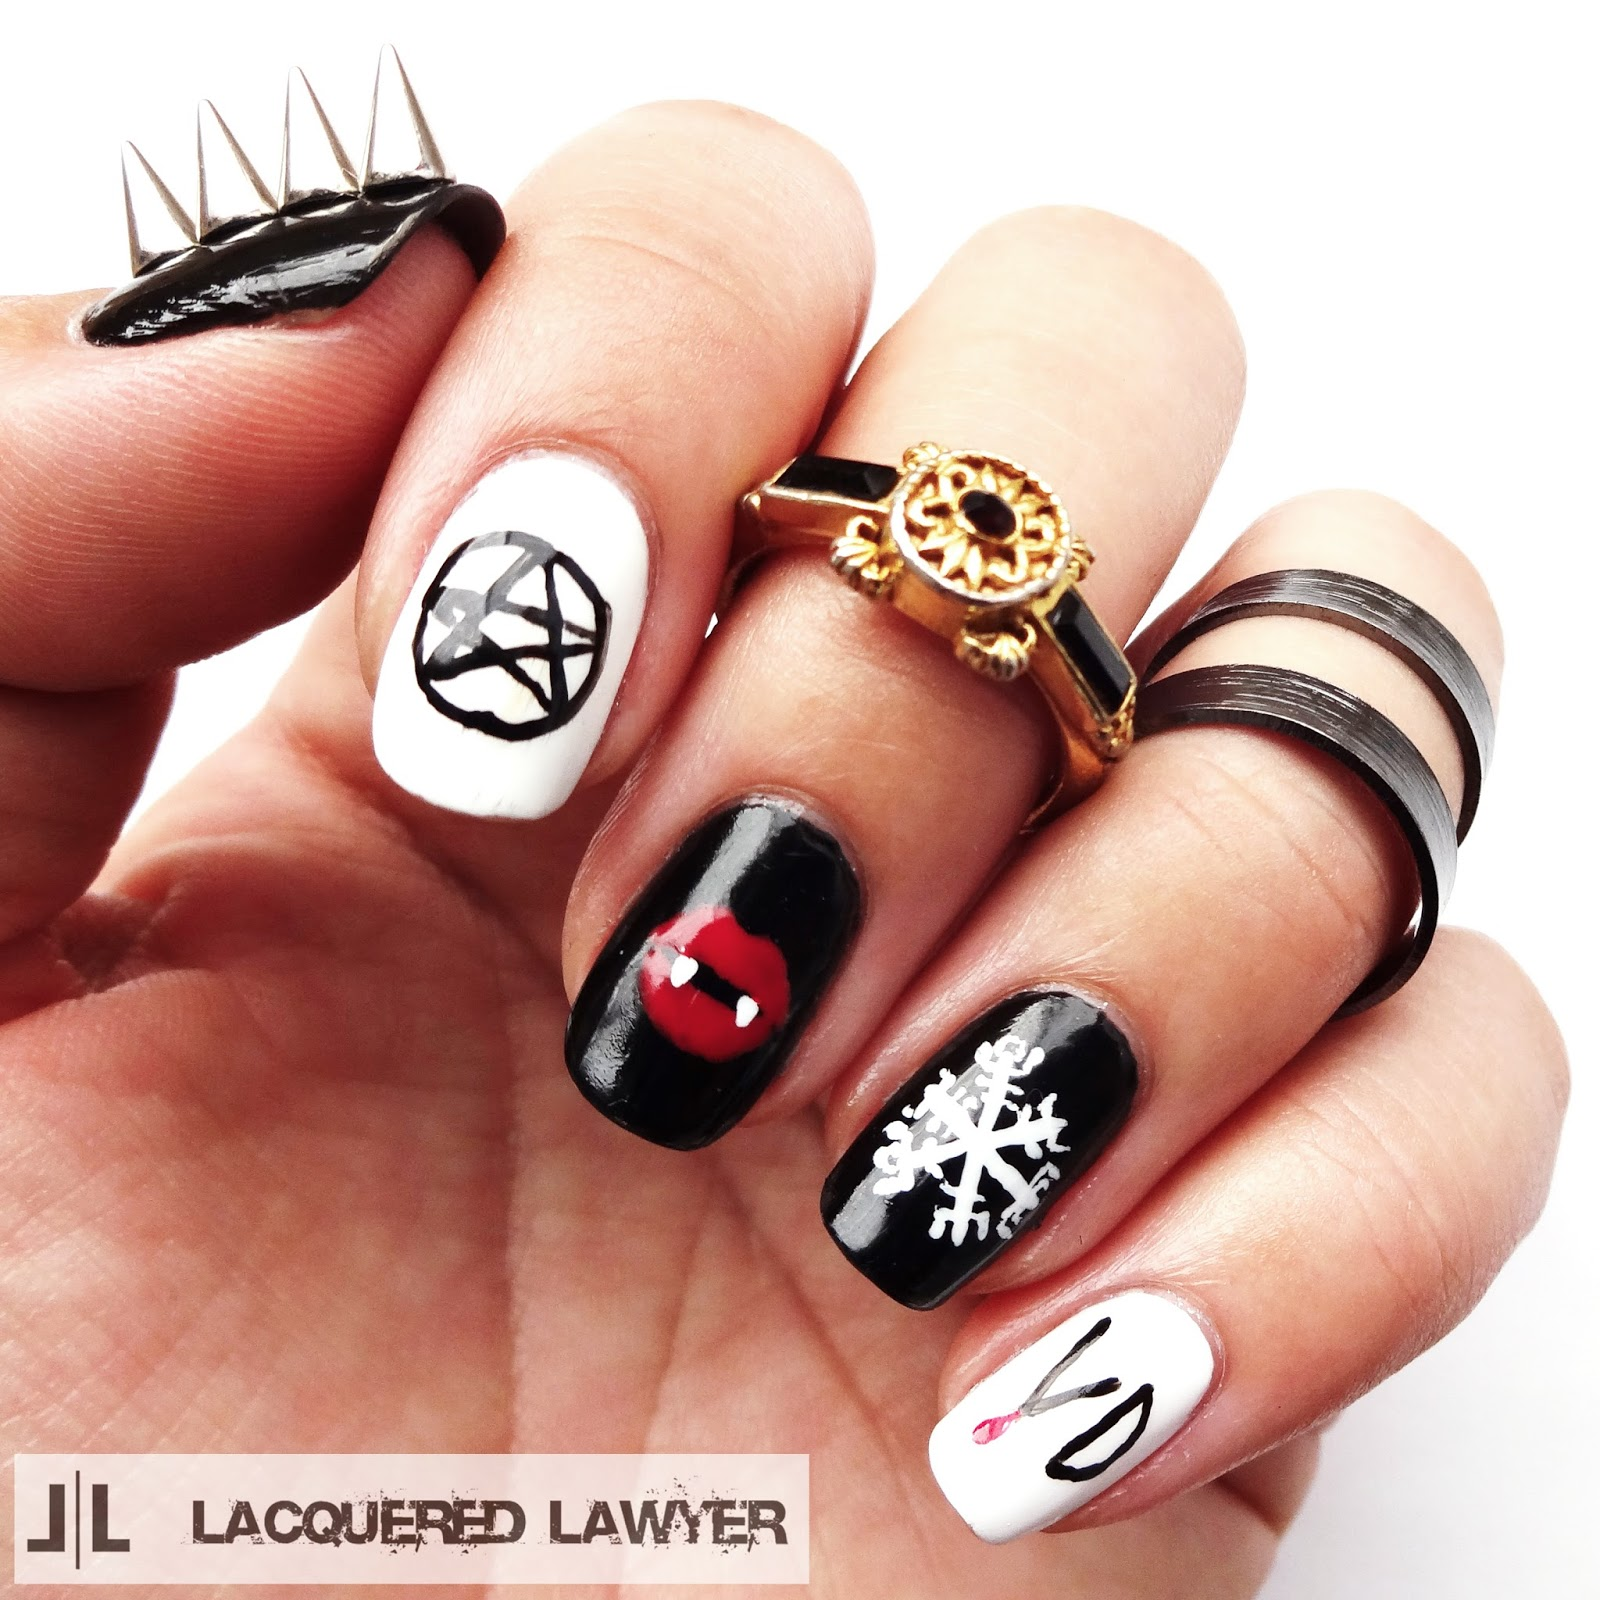 Lacquered Lawyer | Nail Art Blog: The Vampire Diaries